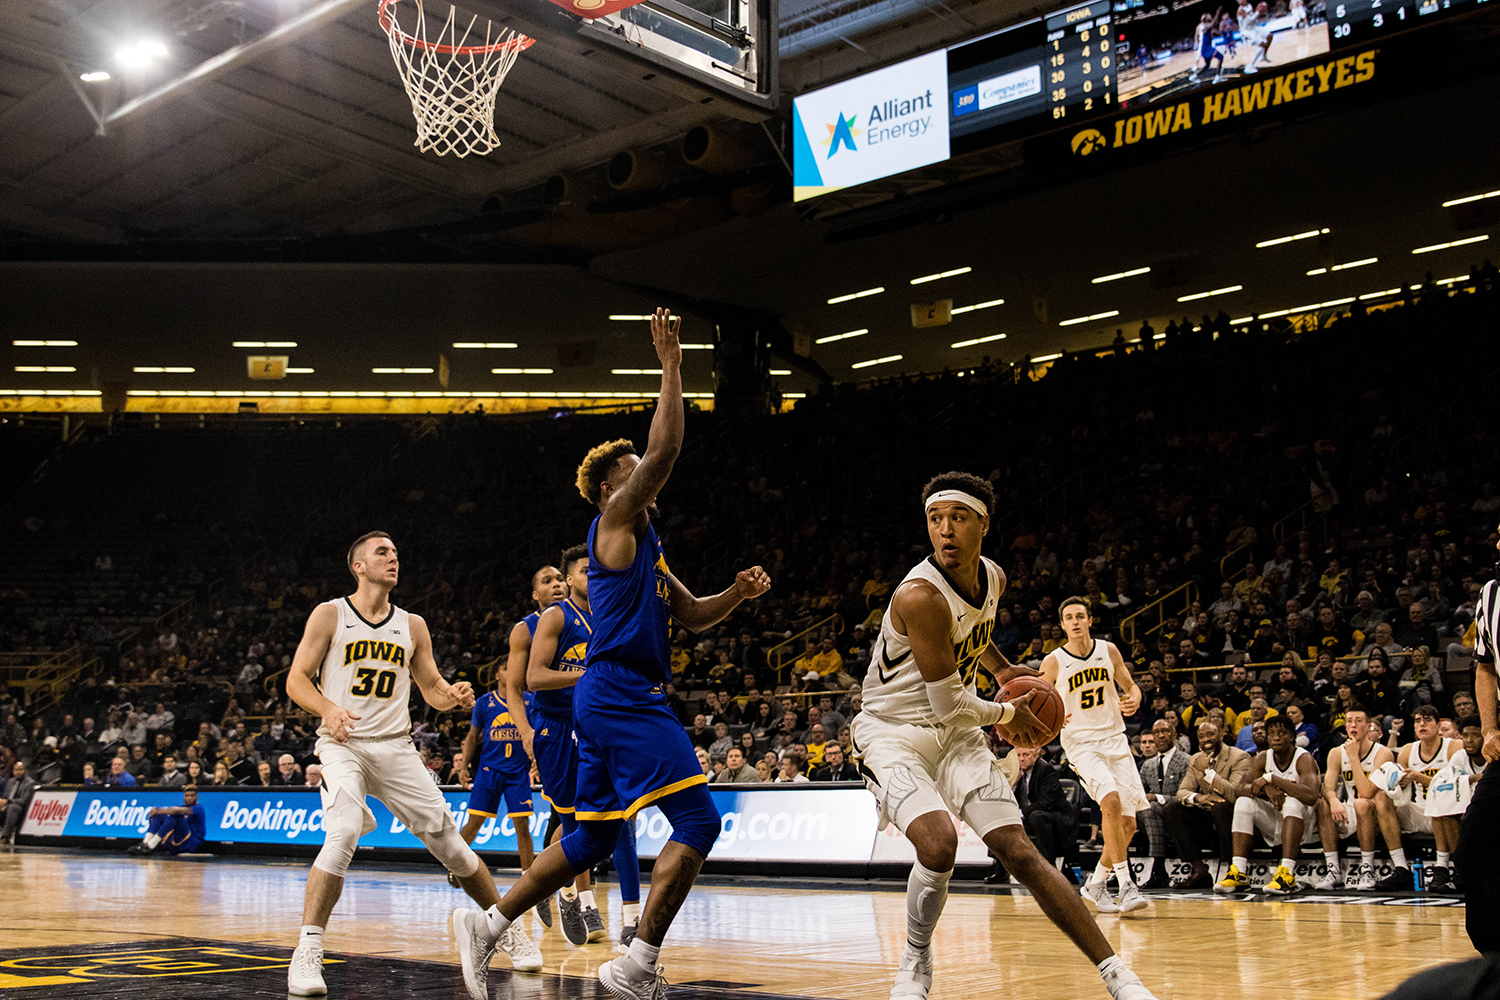 Iowa forward Cordell Pemsl looks to pass during Iowa's game against UMKC at Carver Hawkeye Arena on November 8, 2018. The Hawkeye defeated the Kangaroos 77-63.